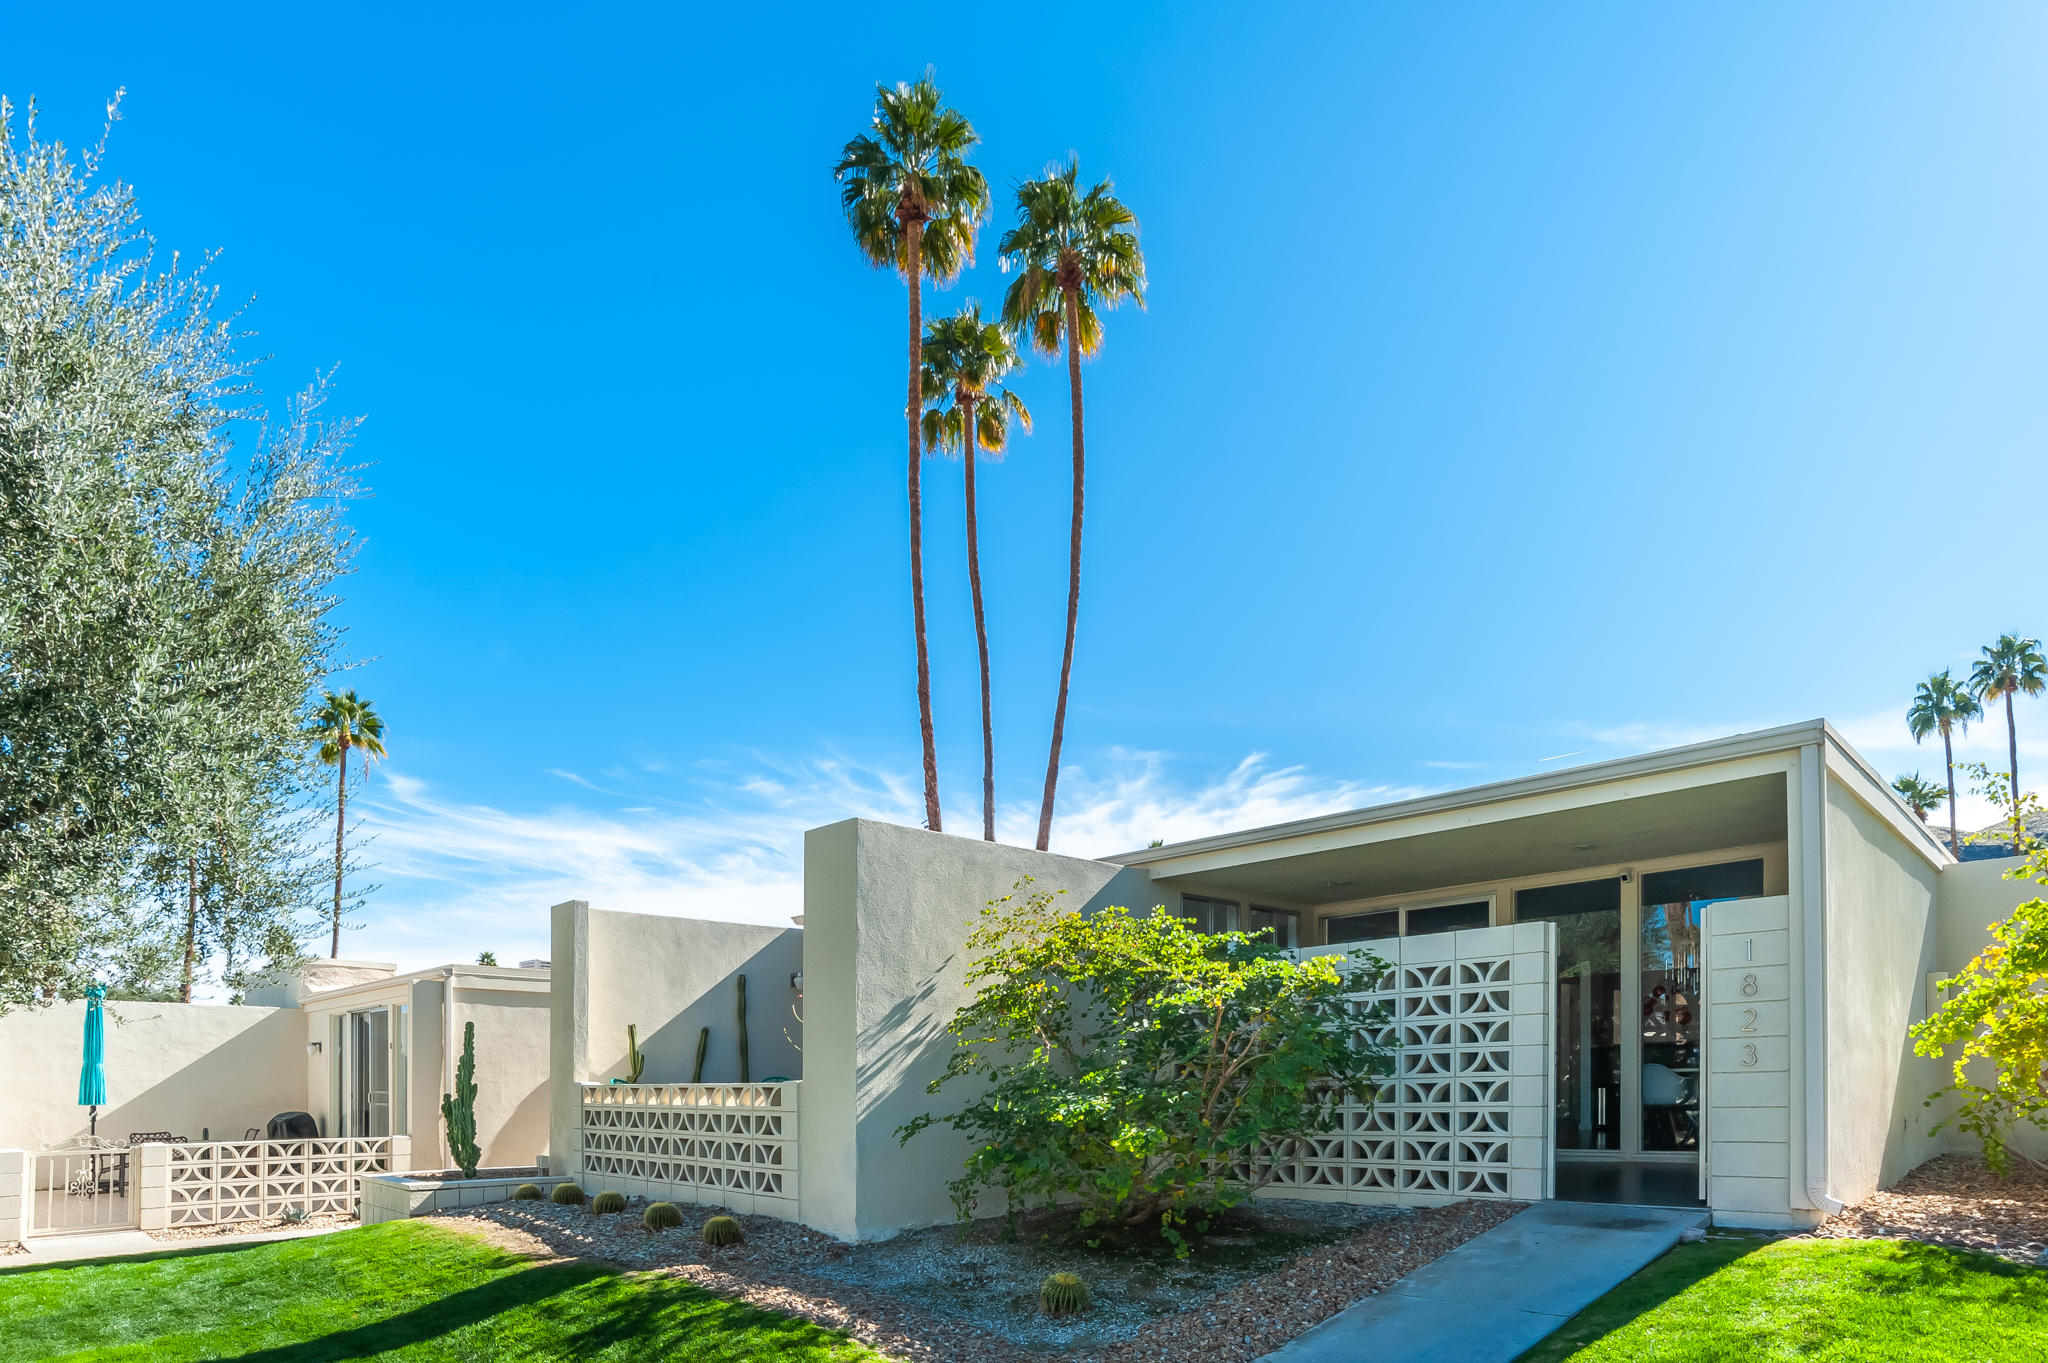 1823 Sandcliff Road, Palm Springs, California 92264, 3 Bedrooms Bedrooms, ,2 BathroomsBathrooms,Residential,For Sale,1823 Sandcliff Road,219037633